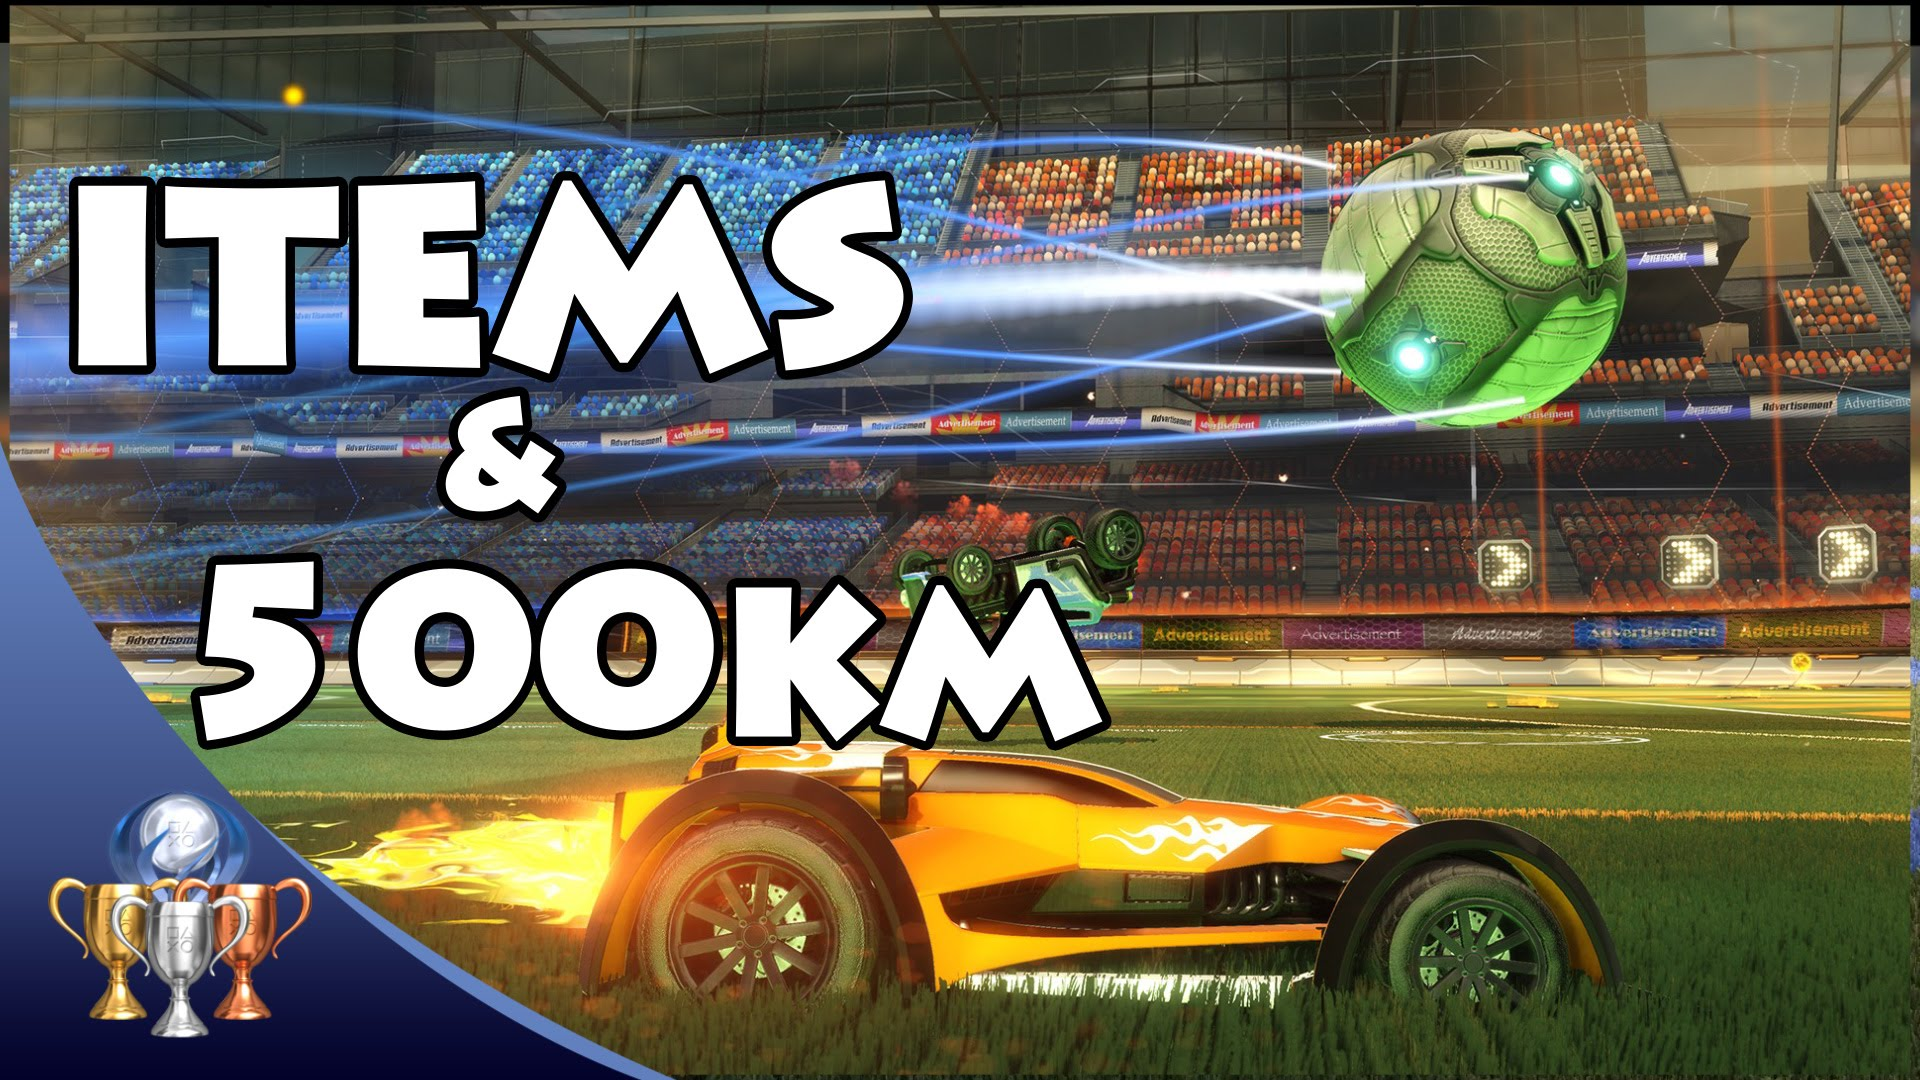 Rocket League All 165 Items Stocked And Driving 500km Far